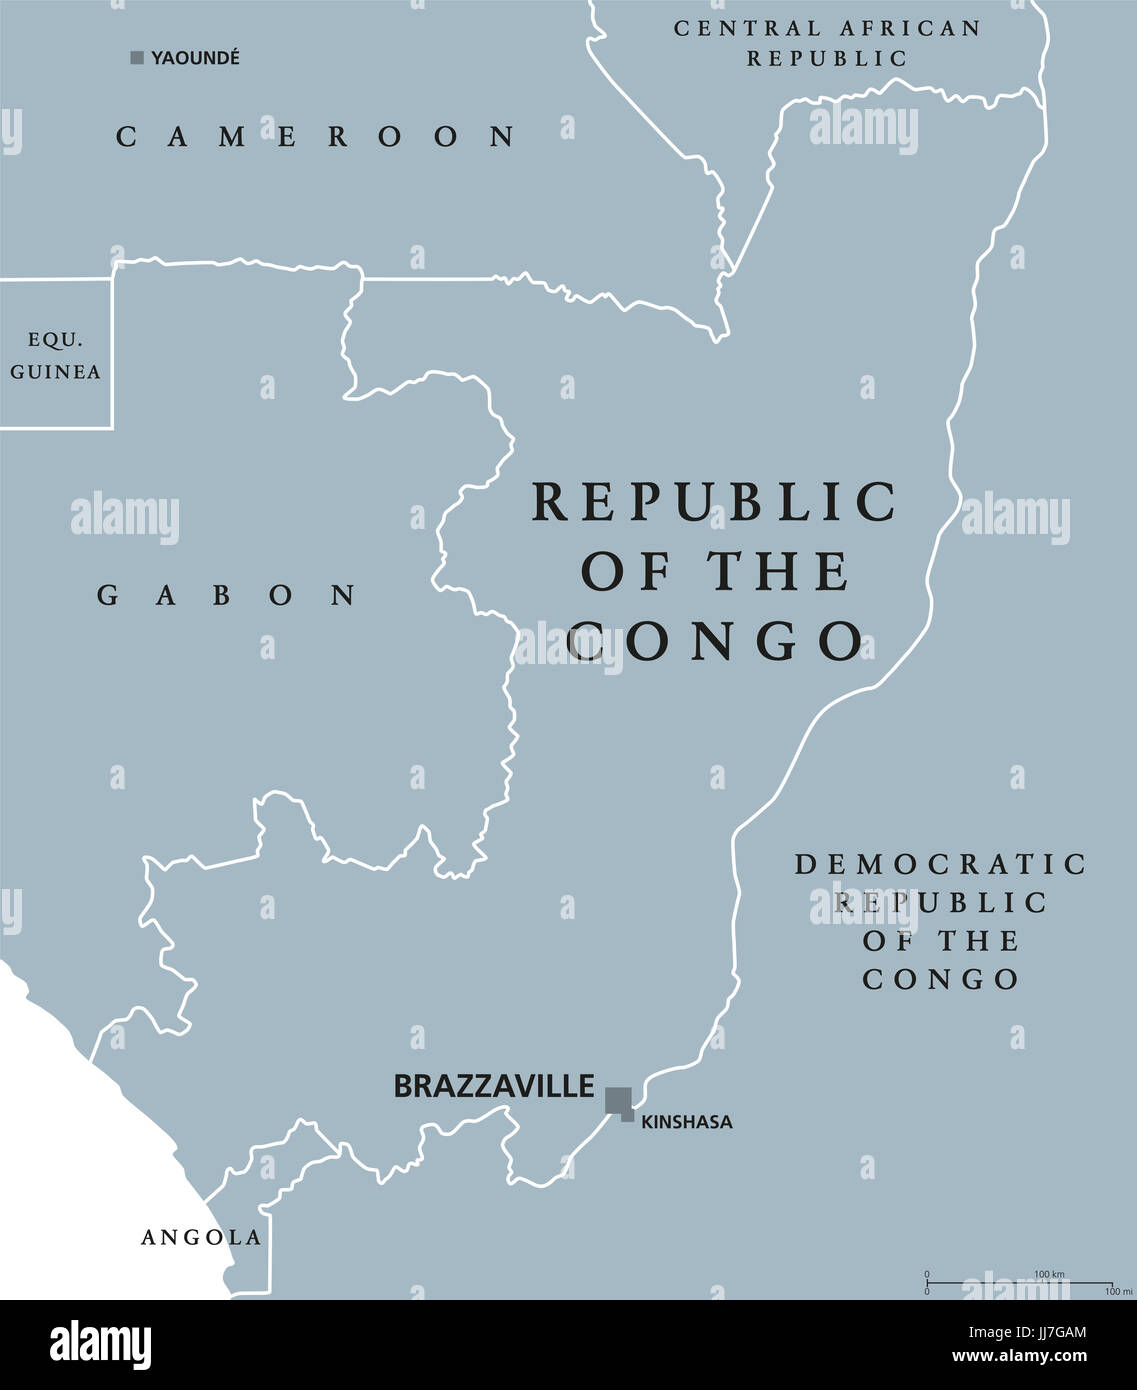 Republic of the Congo political map with capital Brazzaville. Also Congo Republic, West Congo or Congo-Brazzaville. - Stock Image